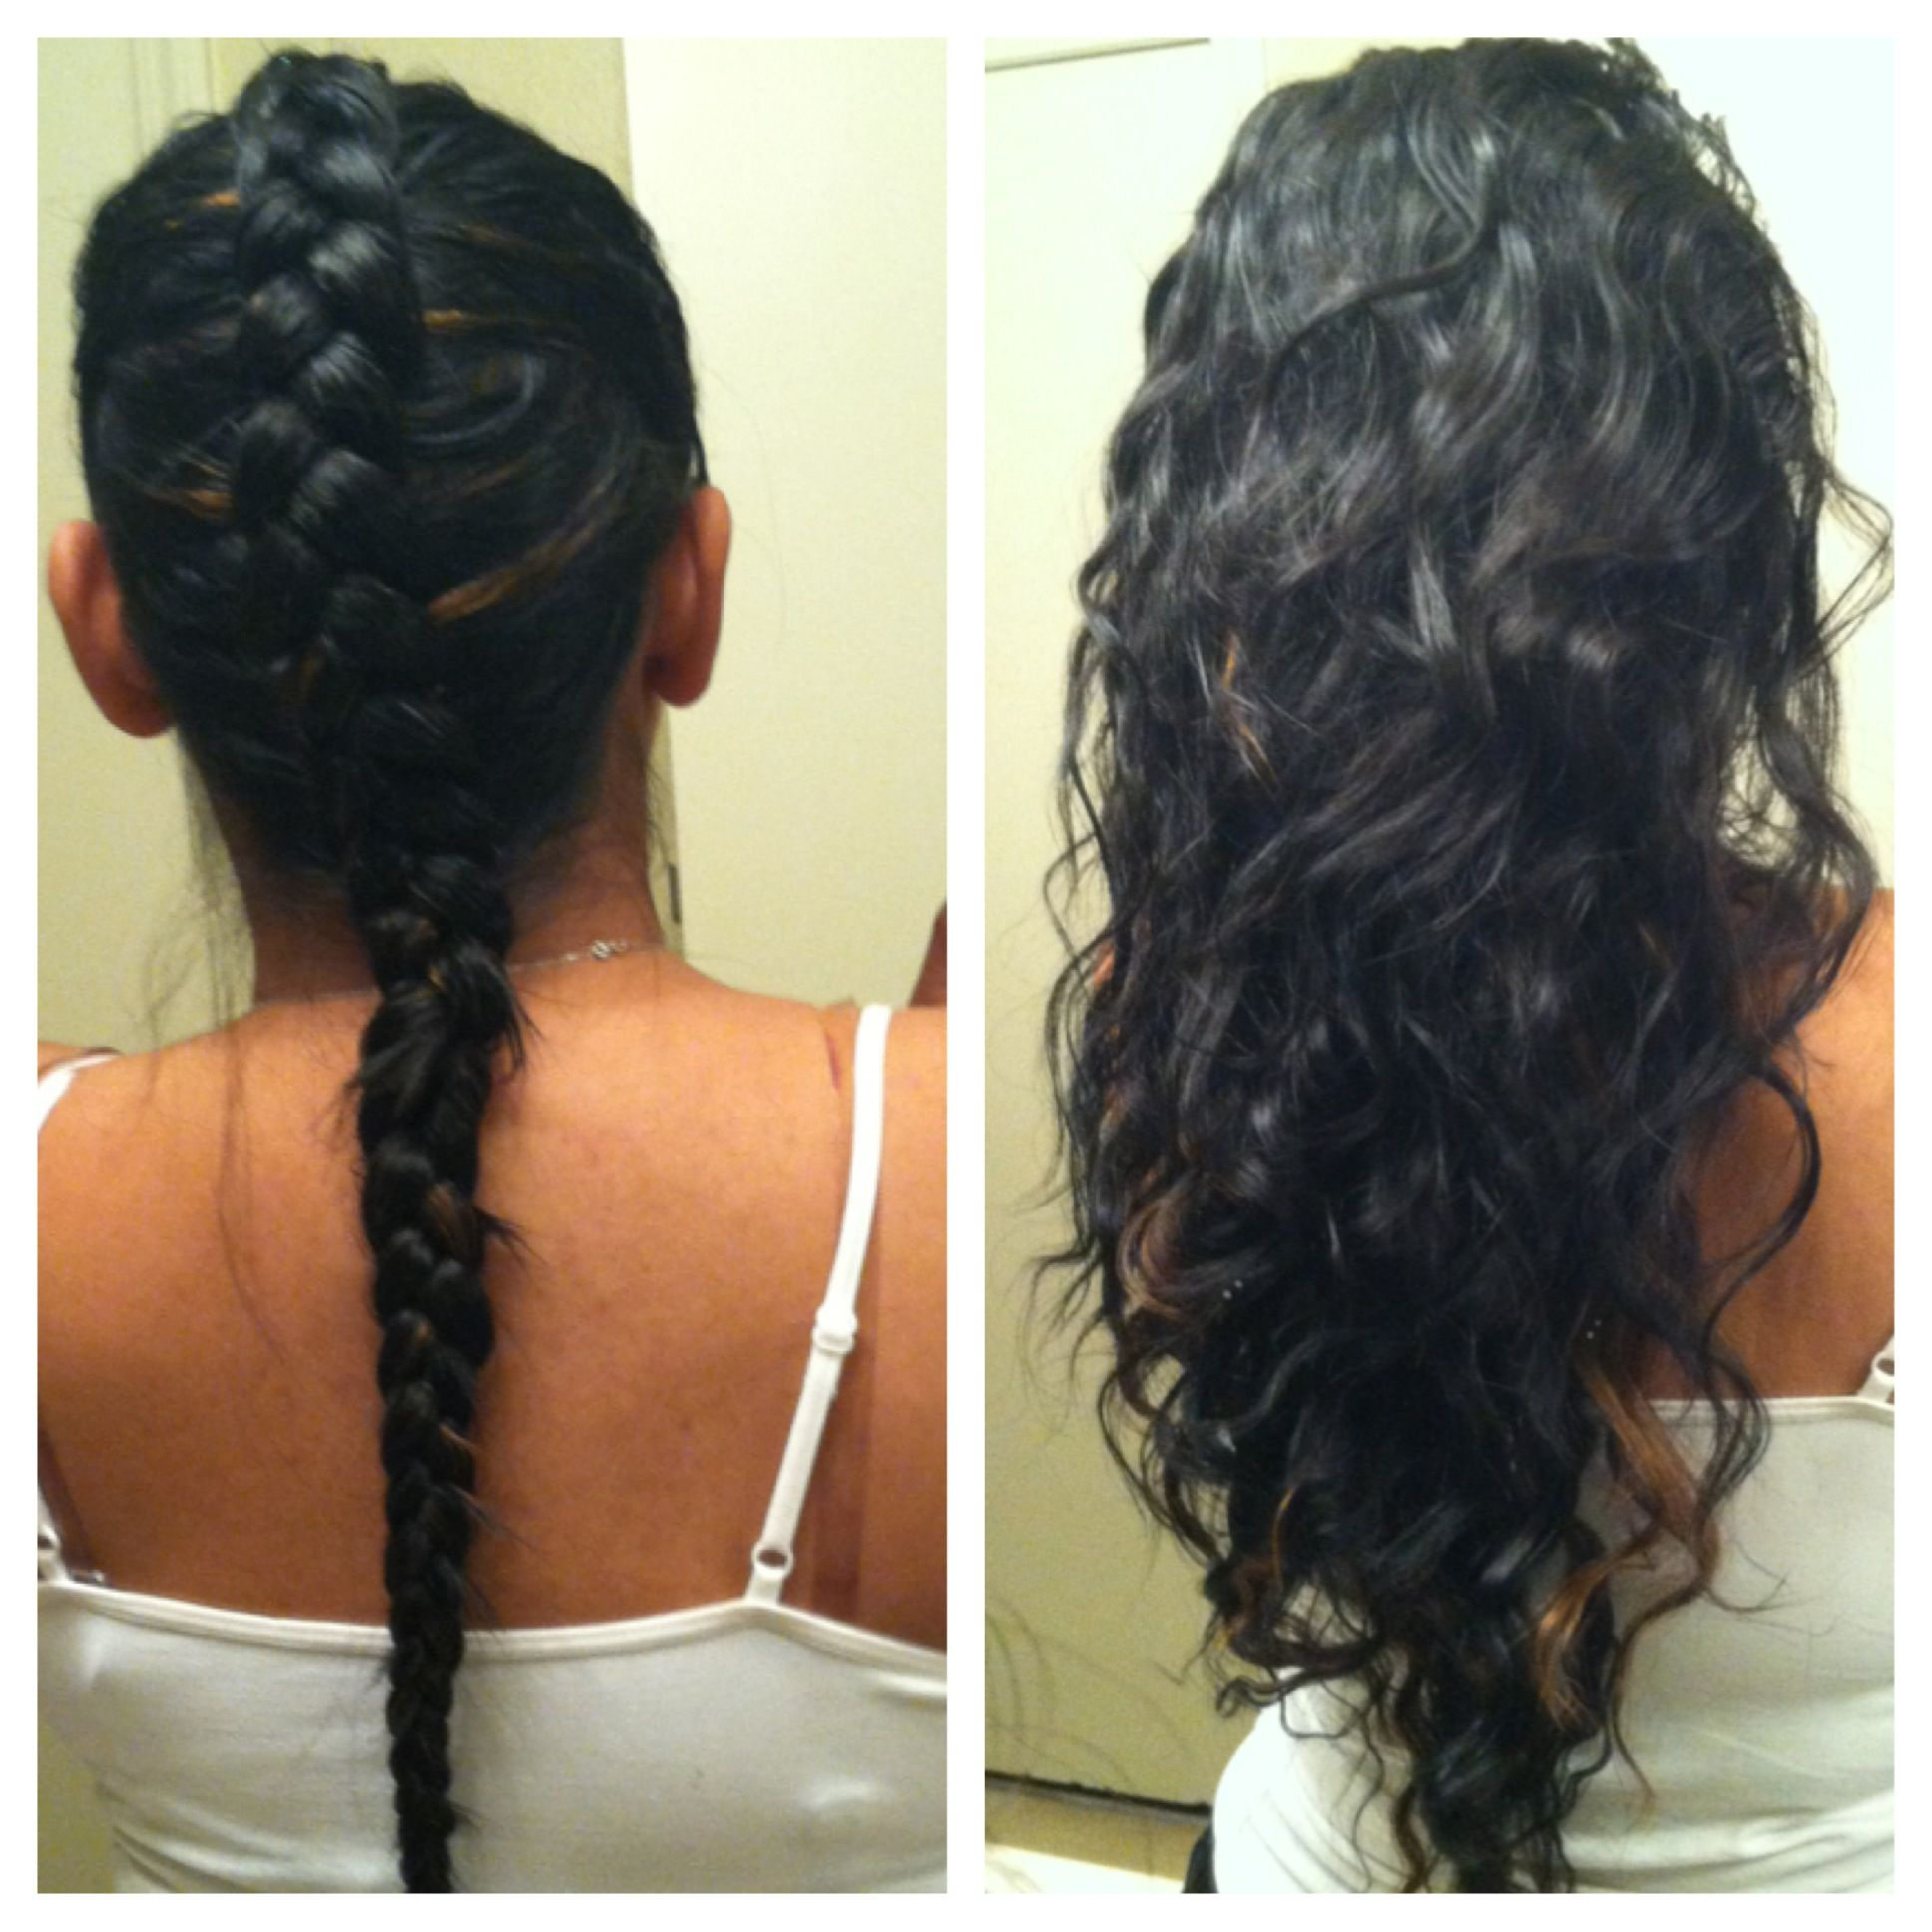 styling wet hair overnight best 25 heatless waves ideas on no heat 8881 | dee4cf2642057bccf10b93535d36813f